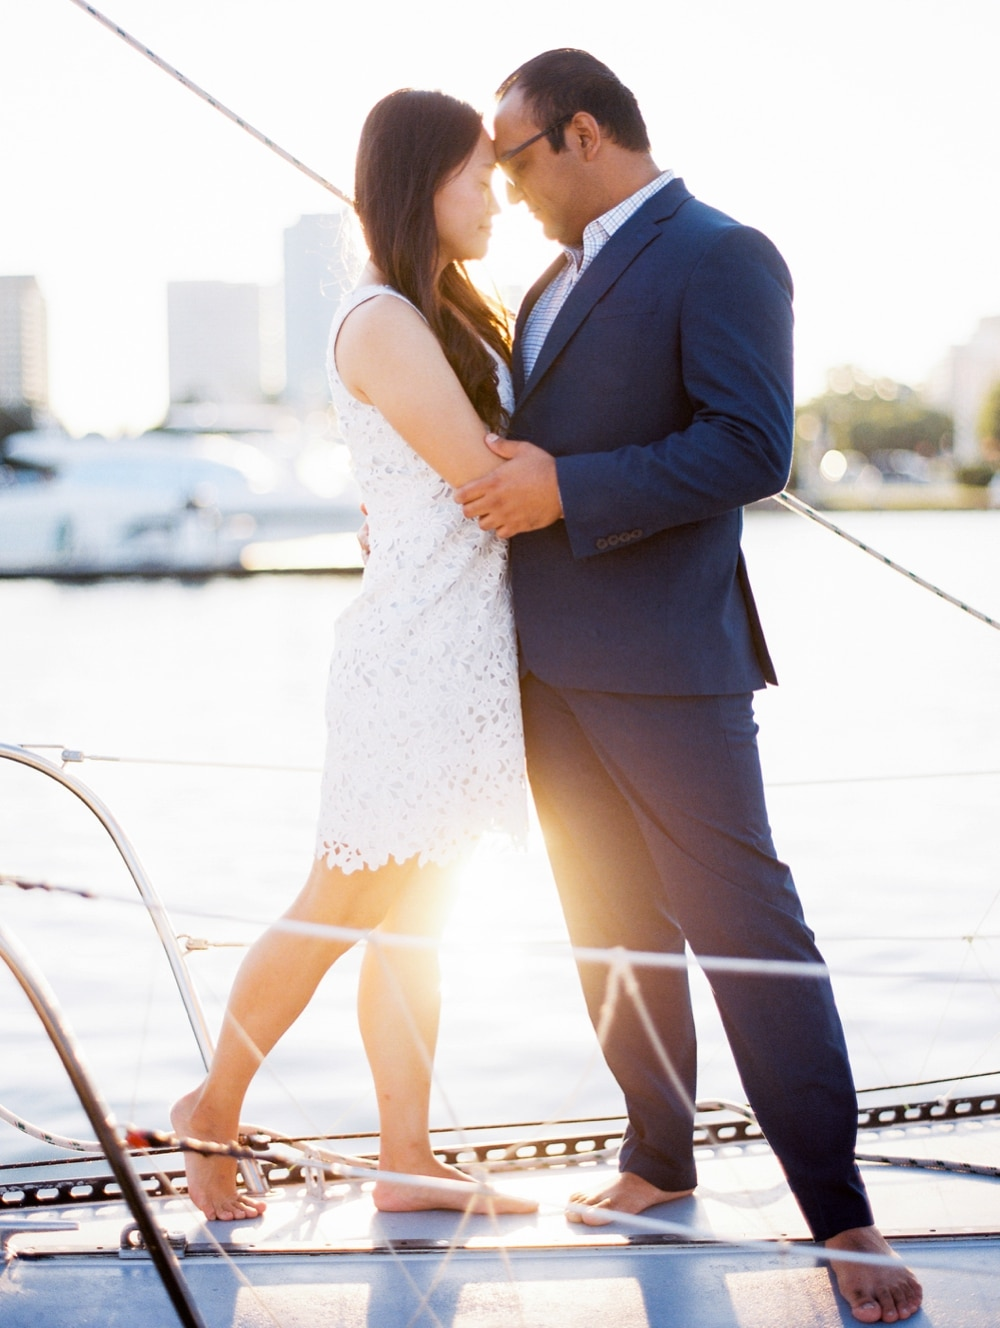 kristin-la-voie-photography-Chicago-wedding-photographer-lake-michigan-sailing-1